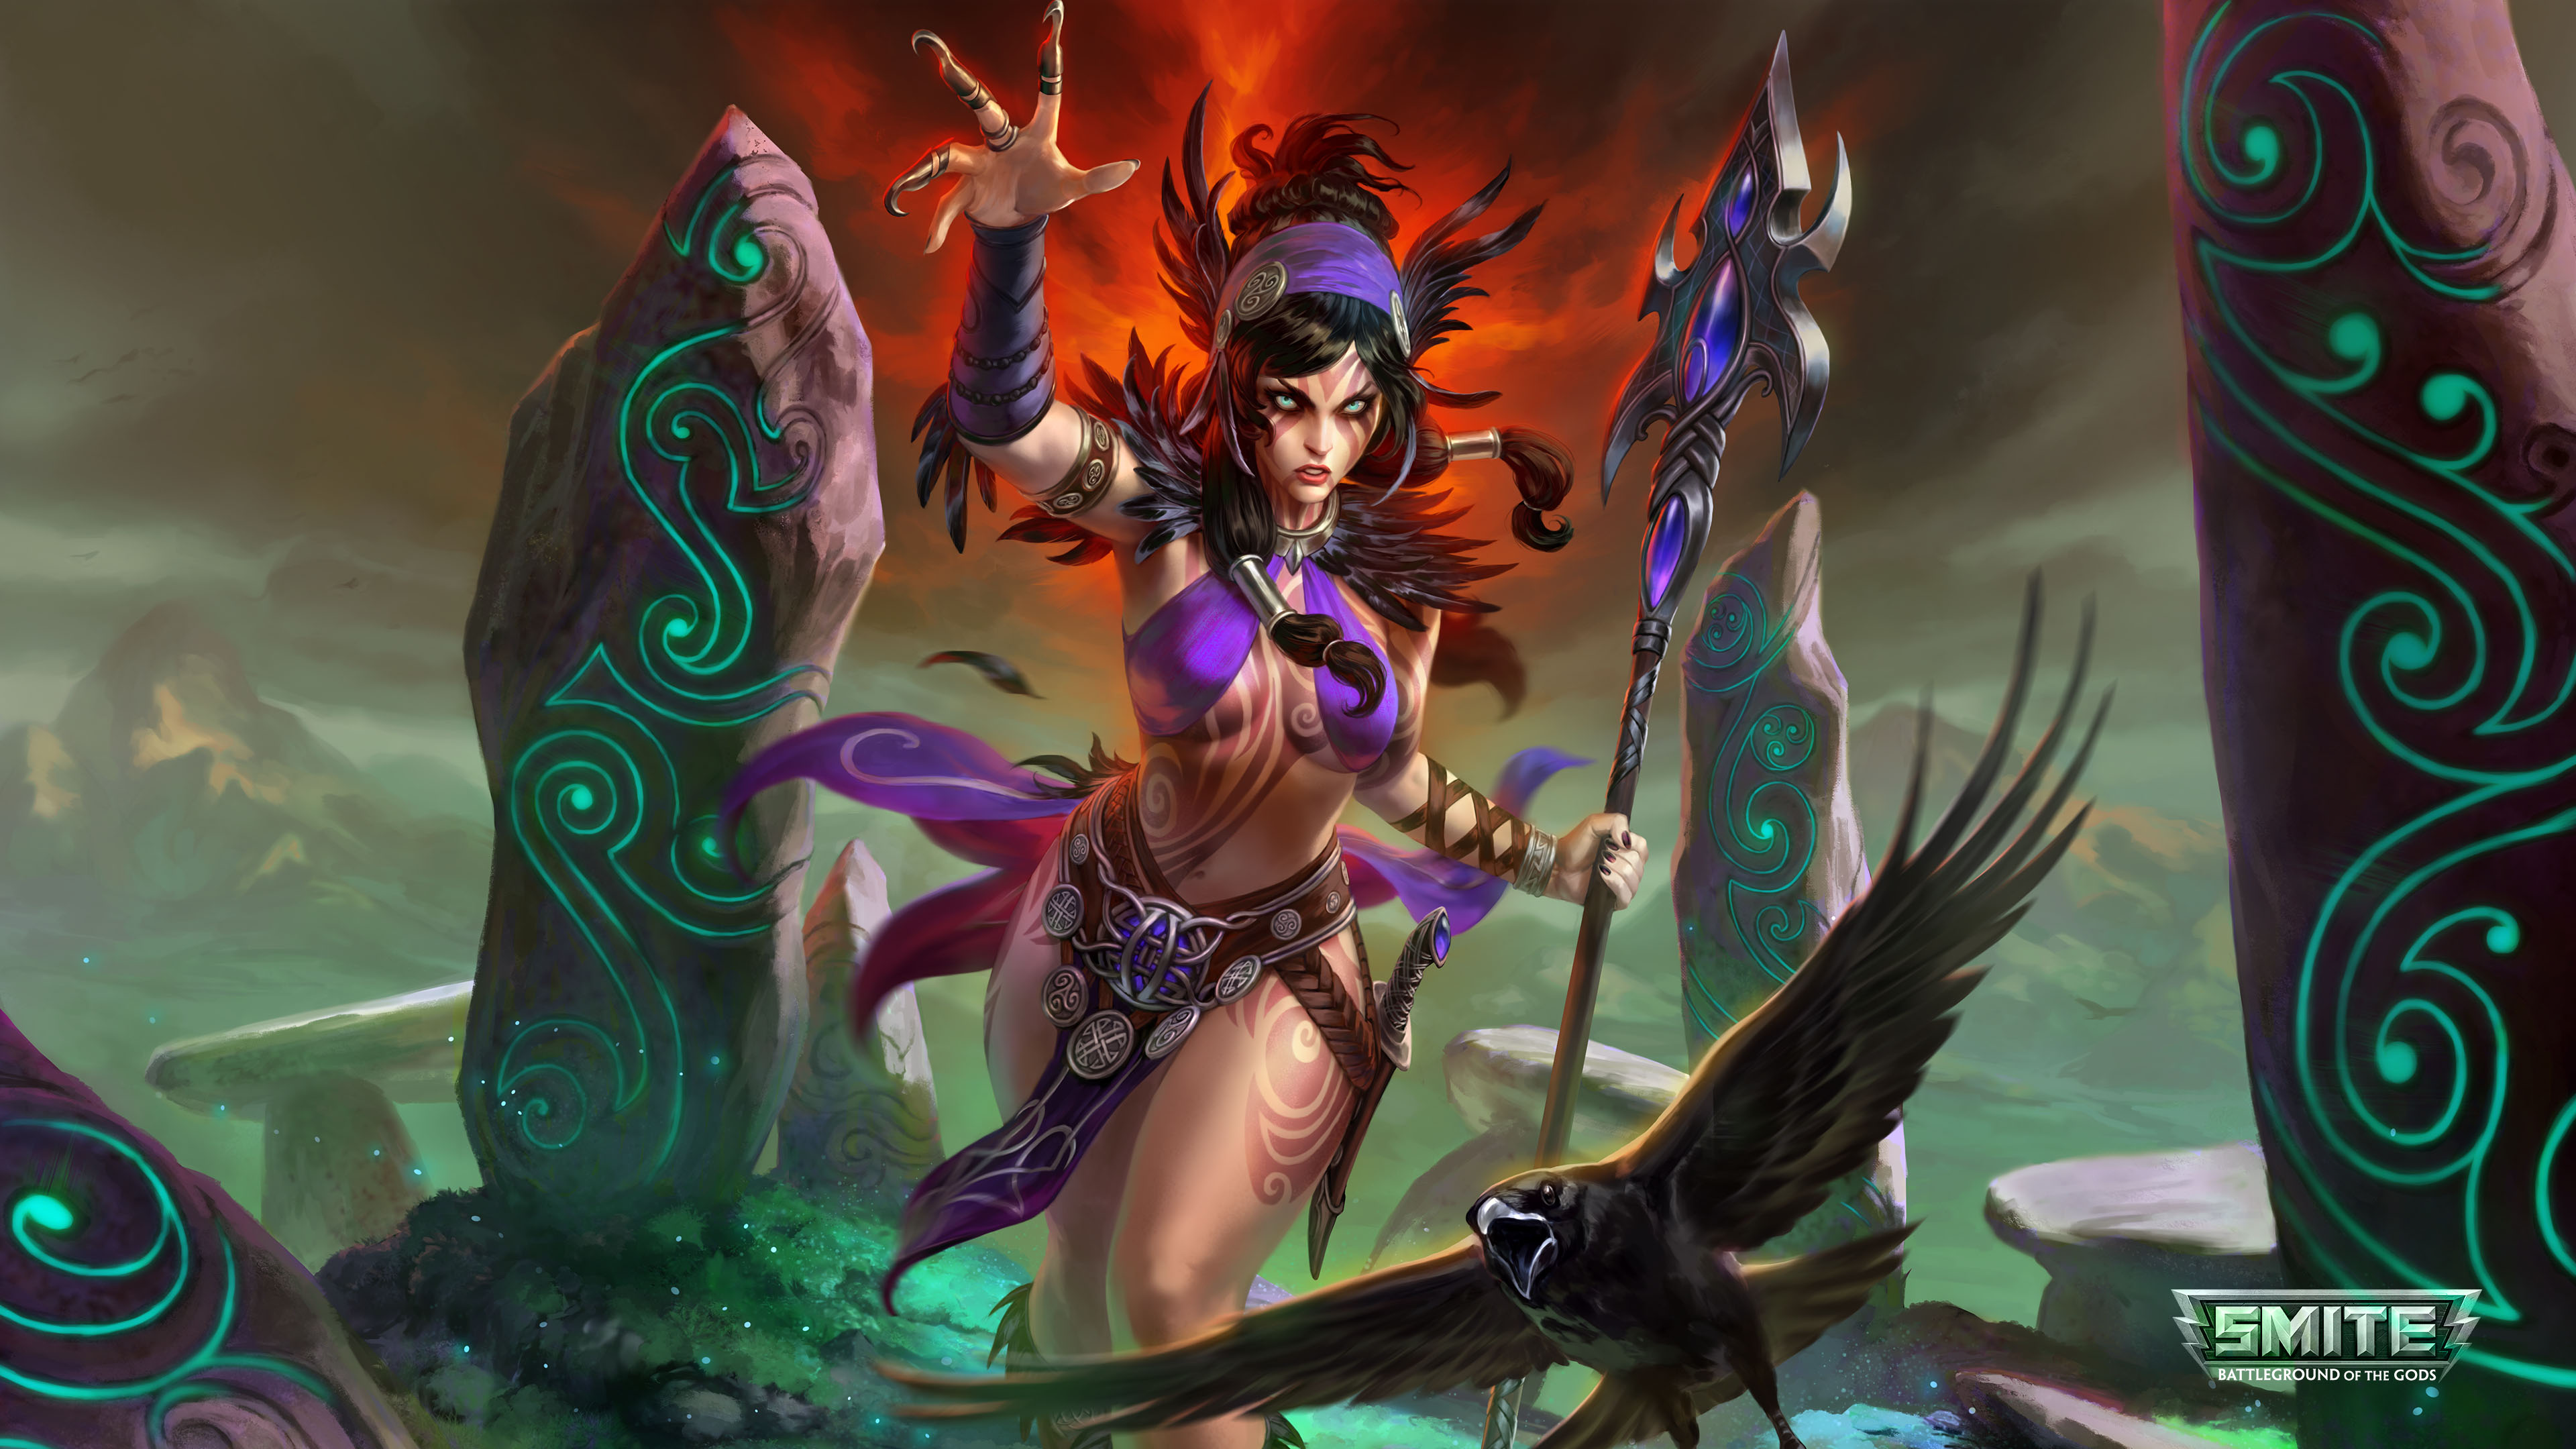 SMITE's Phantom Queen